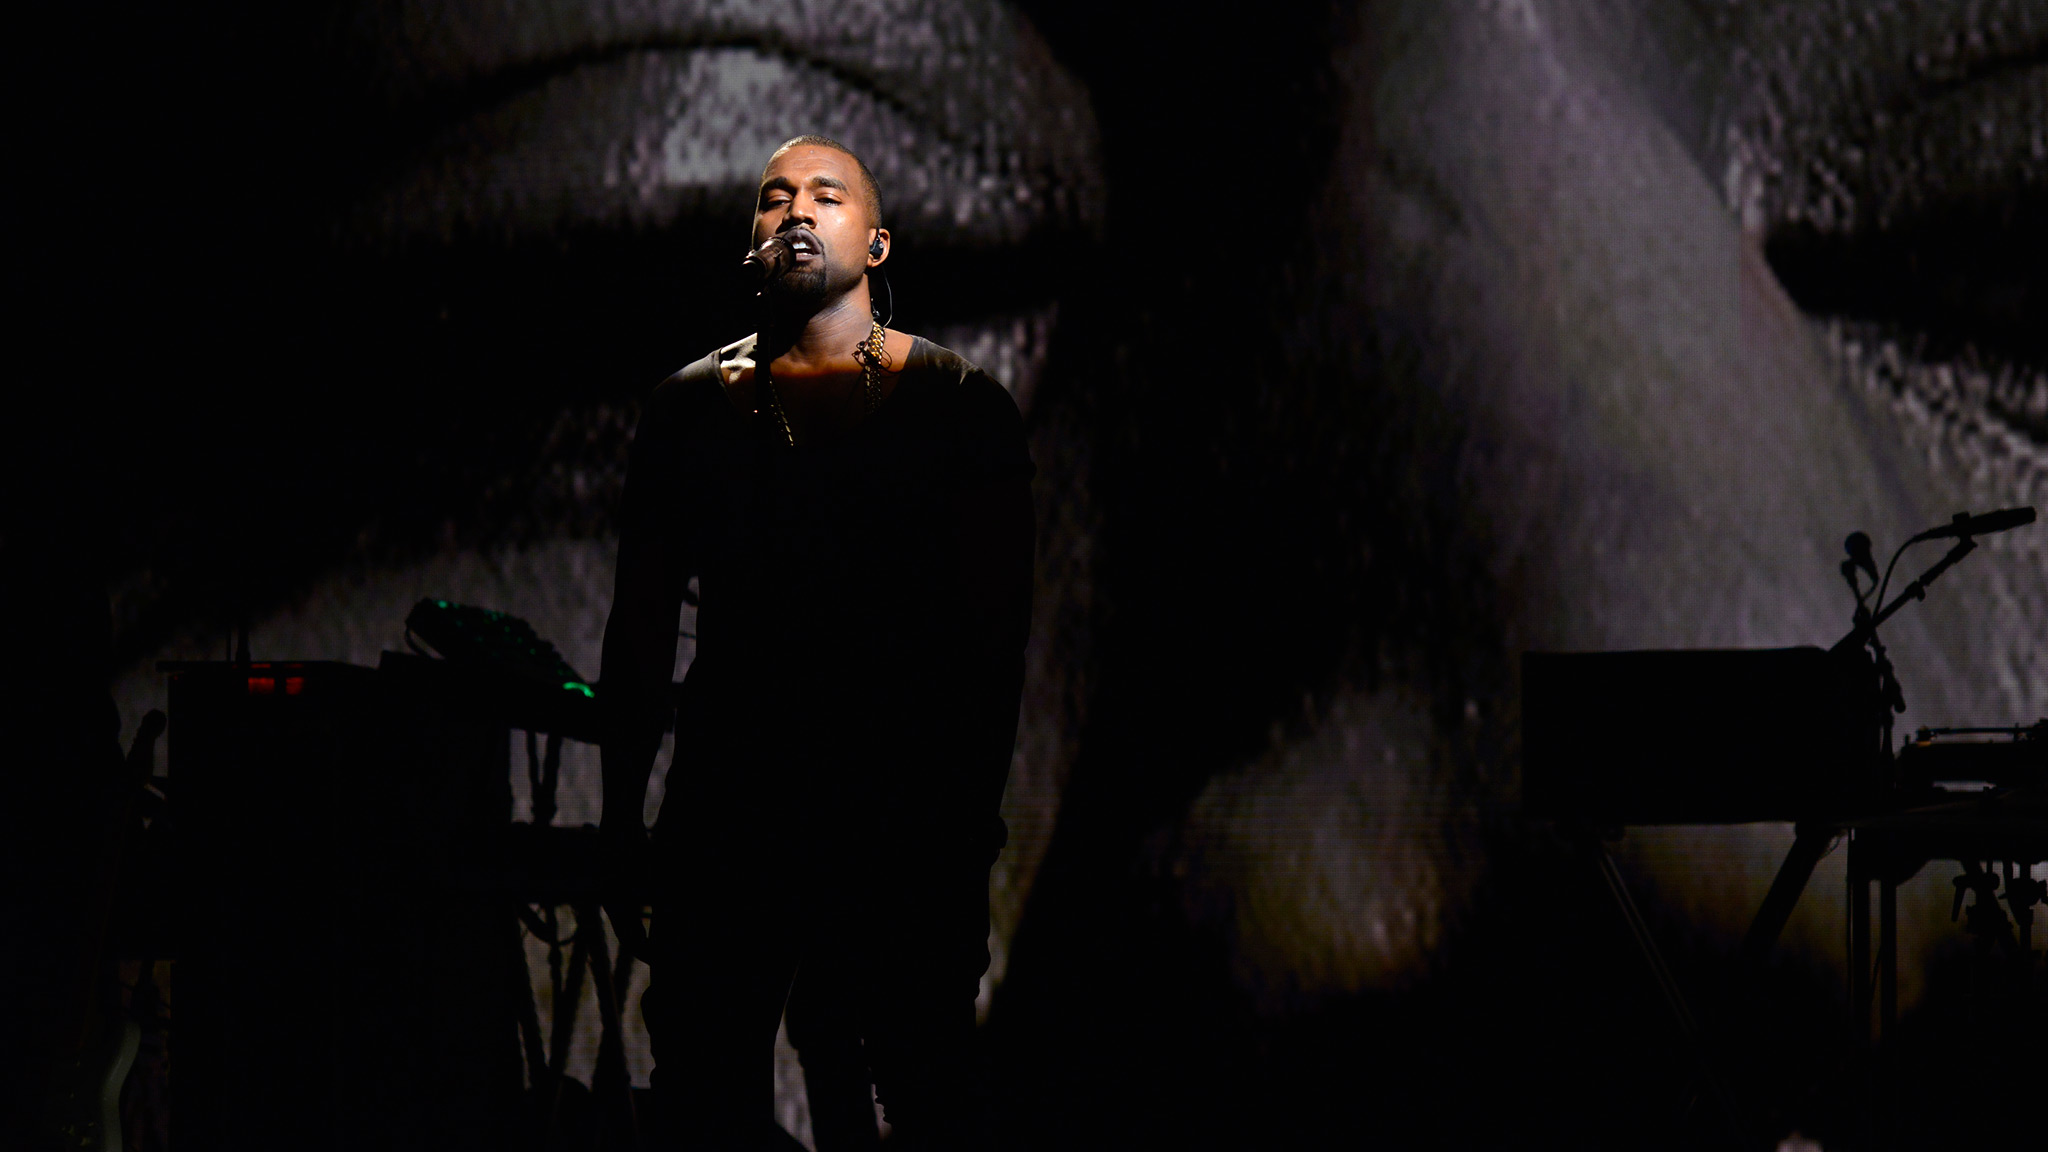 Kanye West and the Flaming Lips will headline a full slate of musical acts at X Games Austin in June.